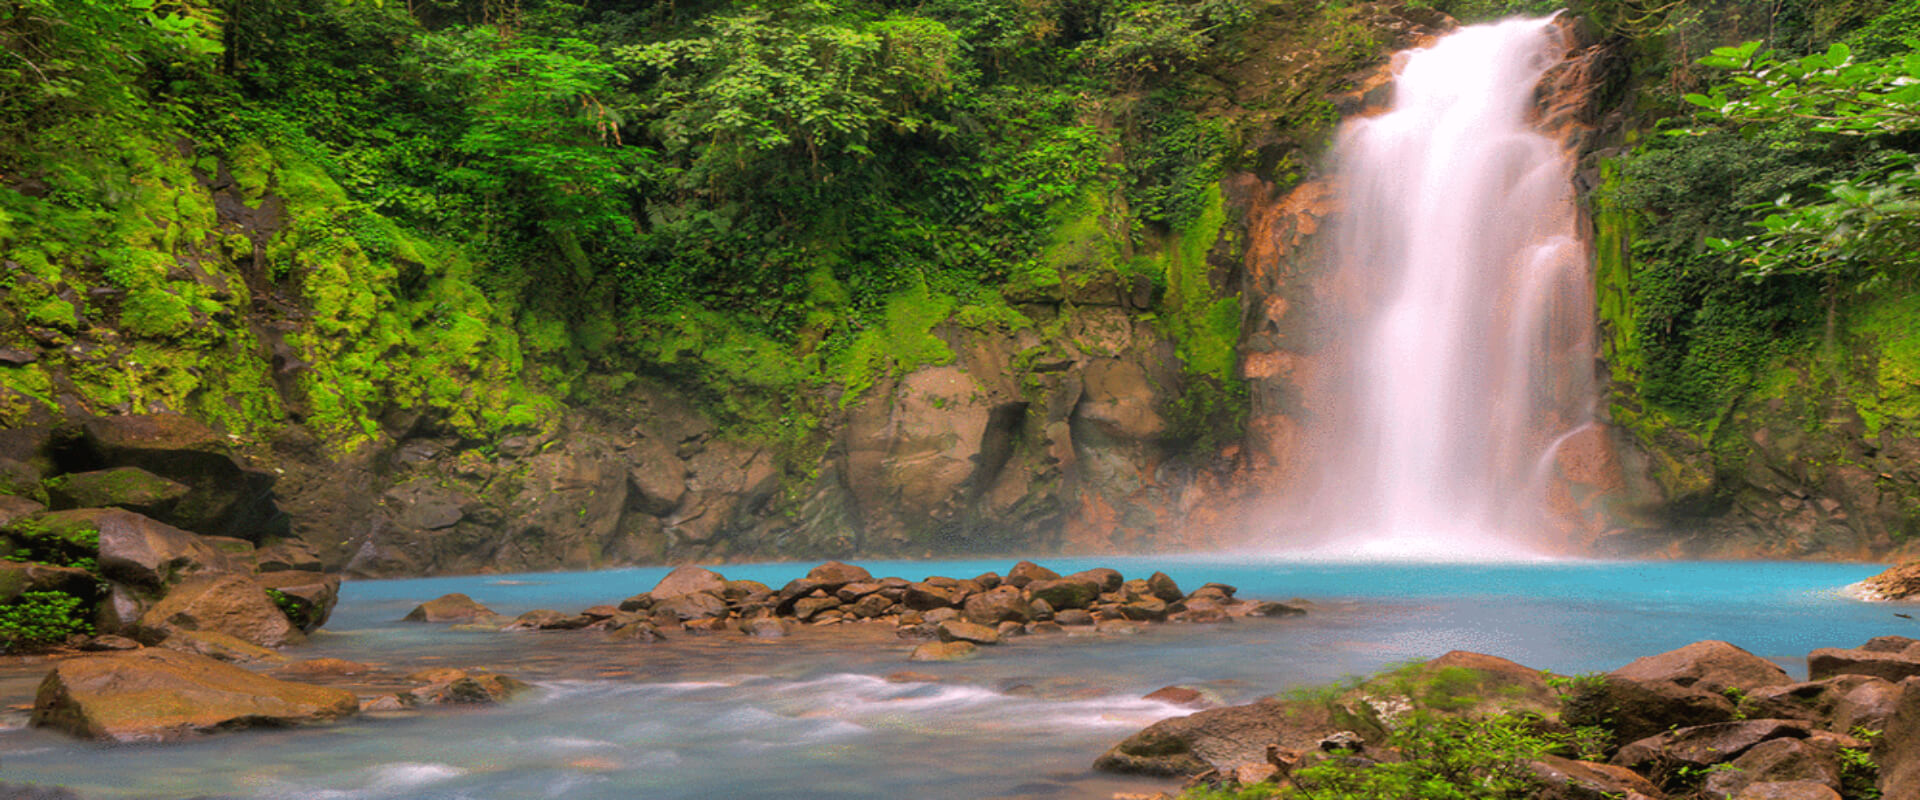 Rio Celeste National Park Guided Hike | Costa Rica Jade Tours